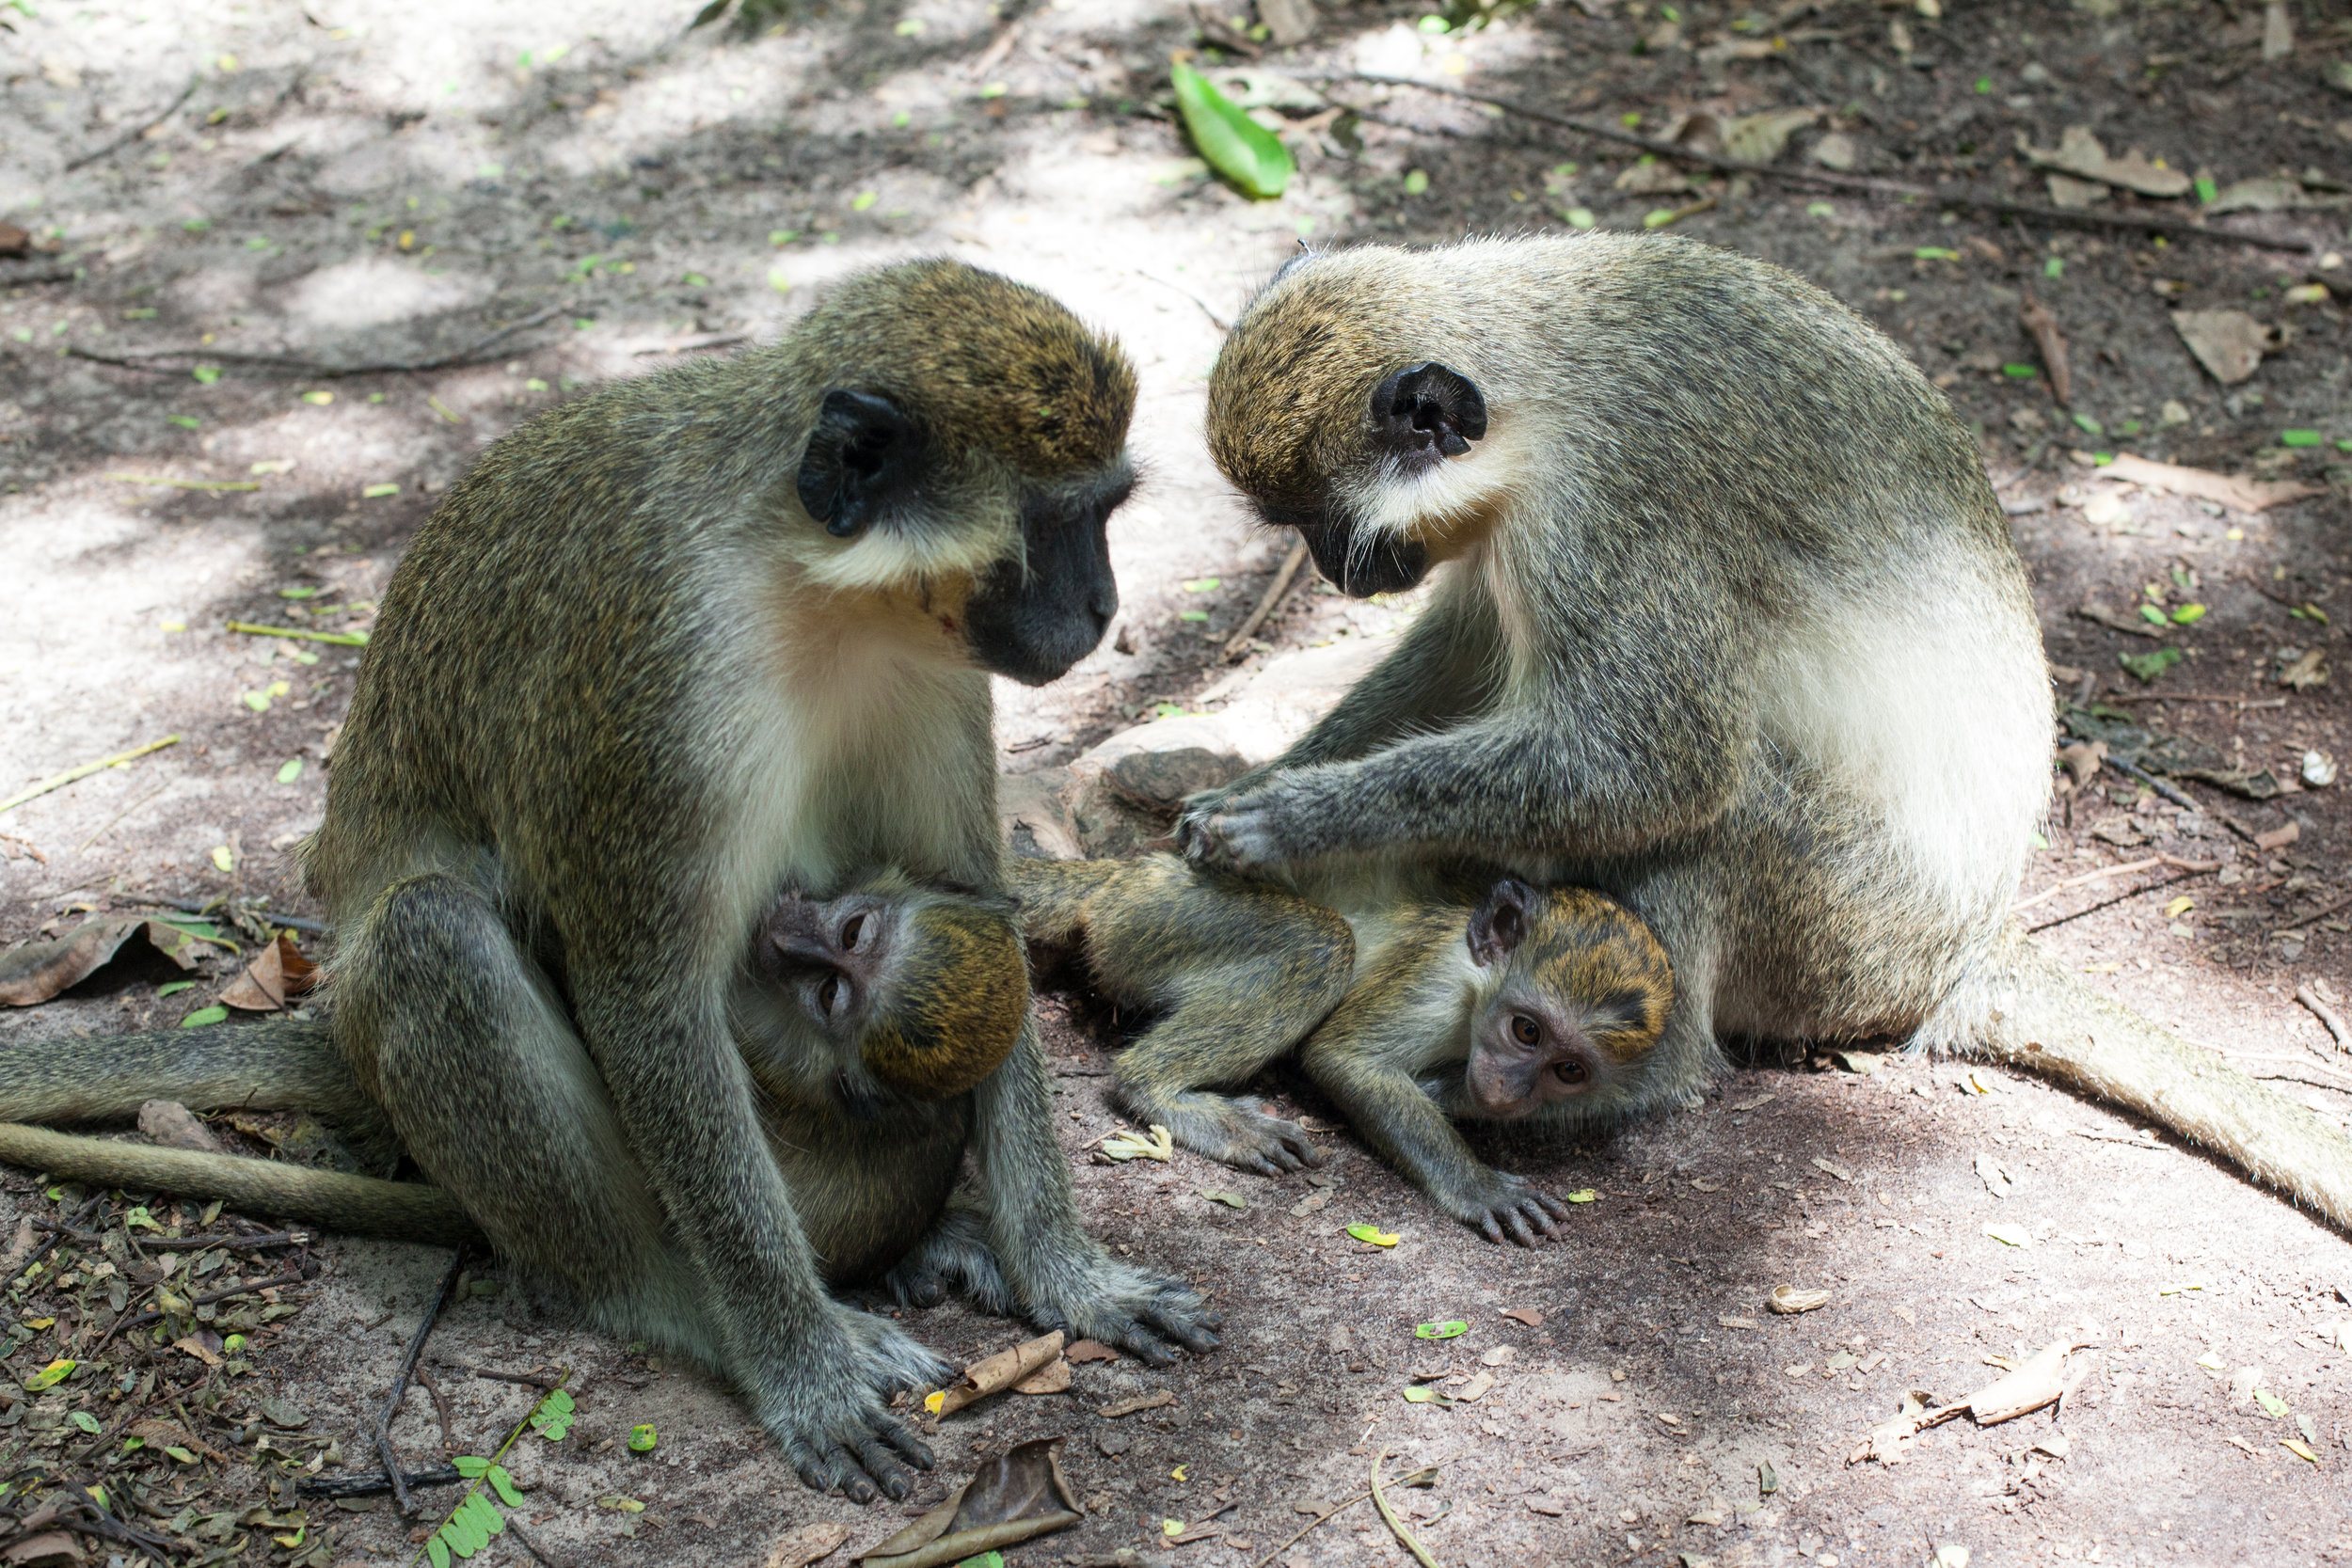 Monkeys at the Bijilo Forest Park, The Gambia